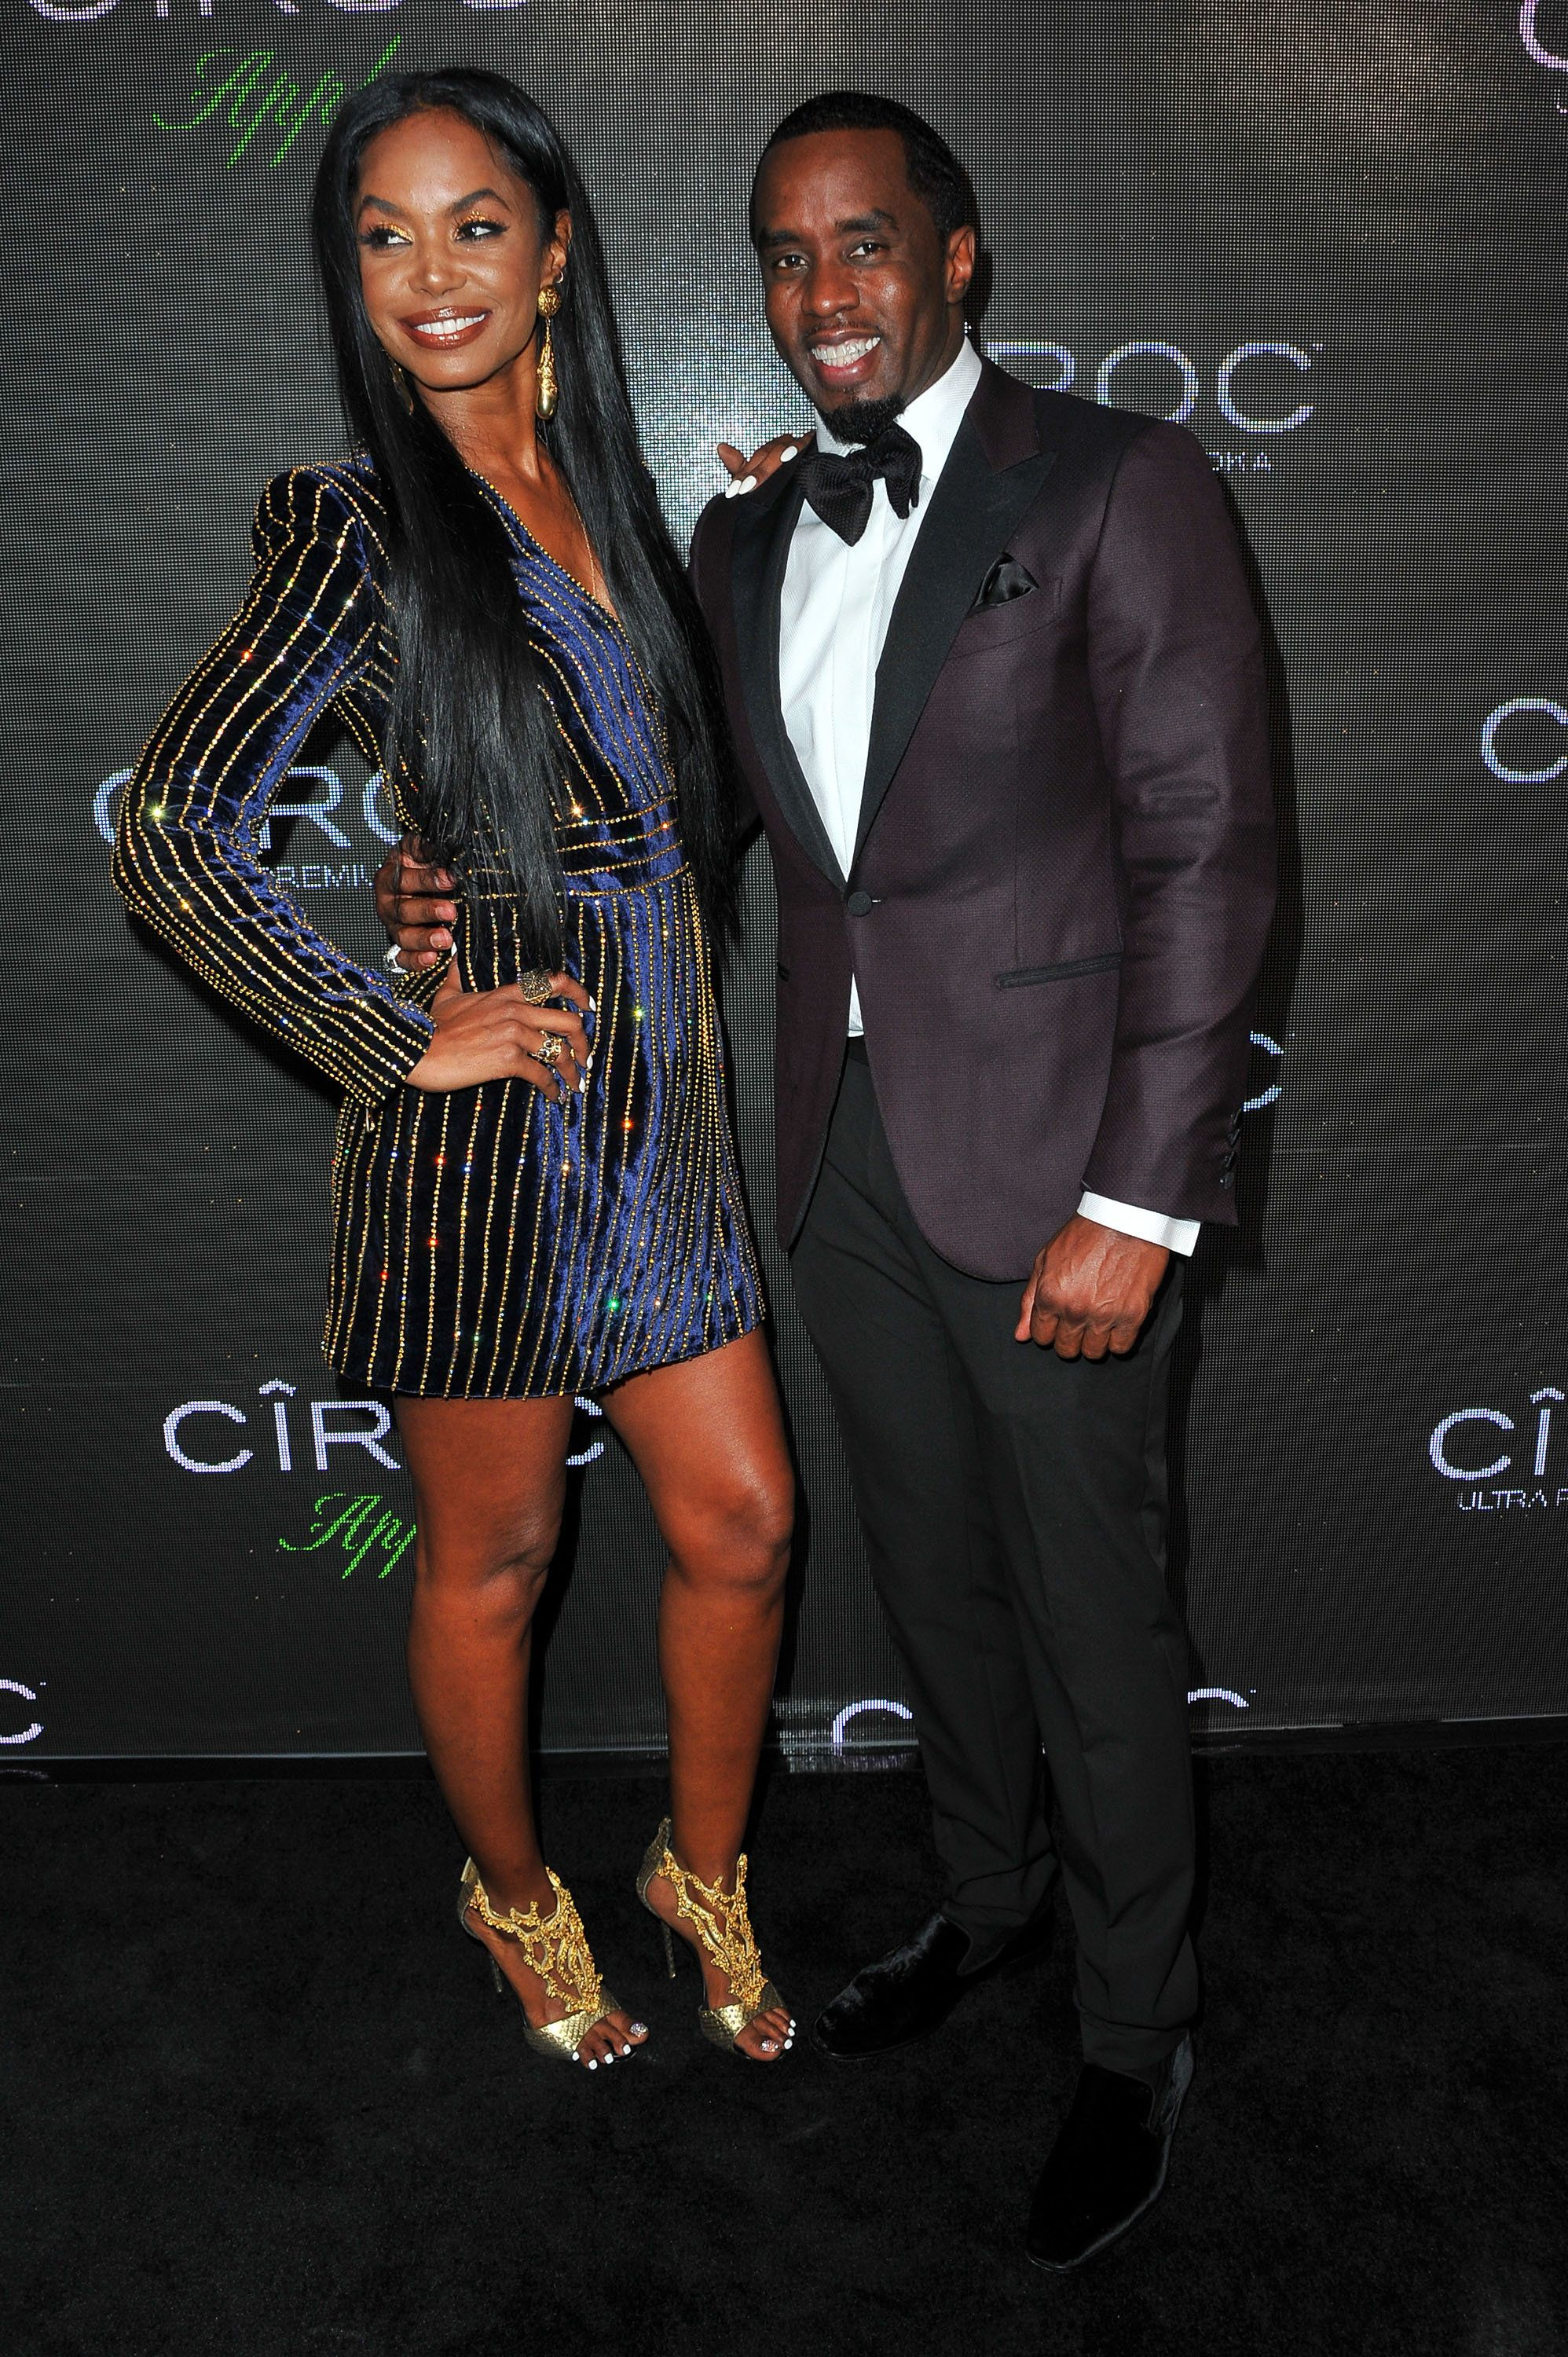 BEVERLY HILLS, CA - NOVEMBER 21:  Model Kim Porter and recording artist Sean 'Diddy' Combs attend Sean 'Diddy' Combs' Exclusive Birthday Celebration on November 21, 2015 in Beverly Hills, California.  (Photo by Allen Berezovsky/Getty Images)